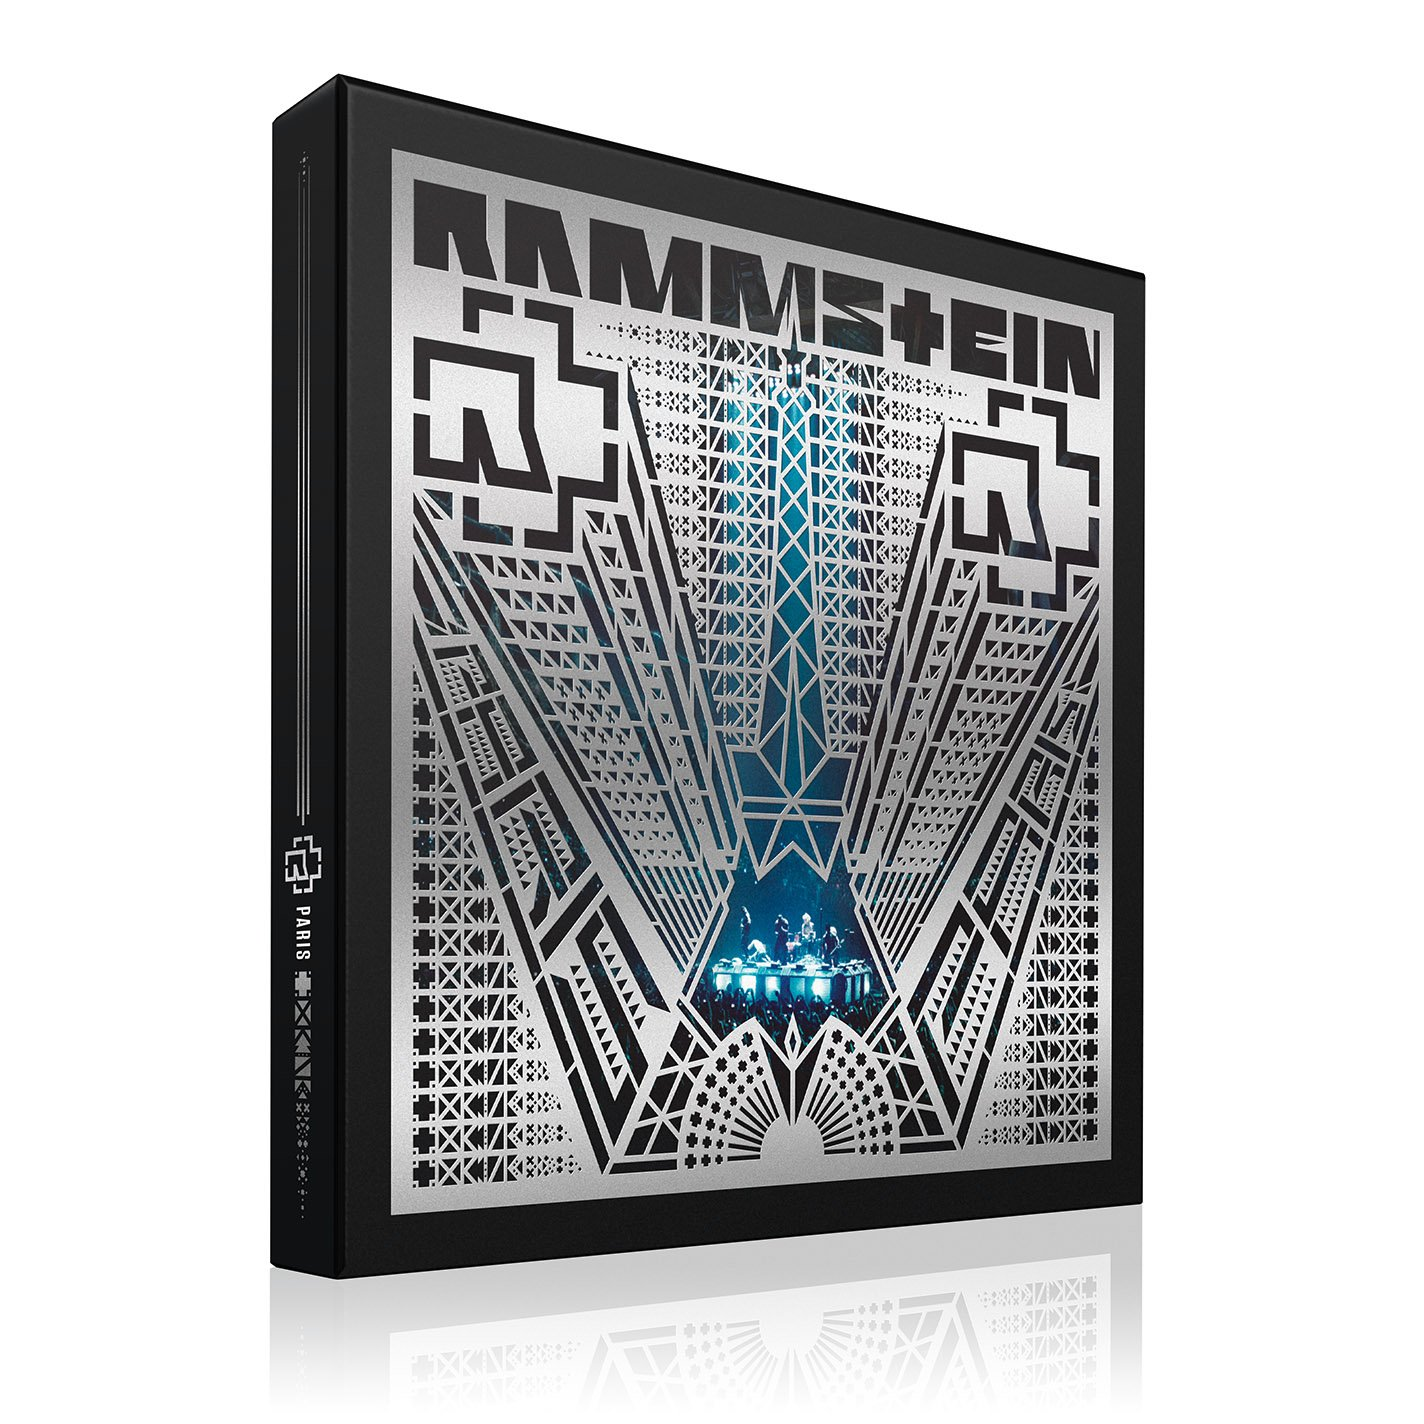 RAMMSTEIN: PARIS [4 LP/2 CD/Blu-Ray][Deluxe Edition][Blue by Spinefarm